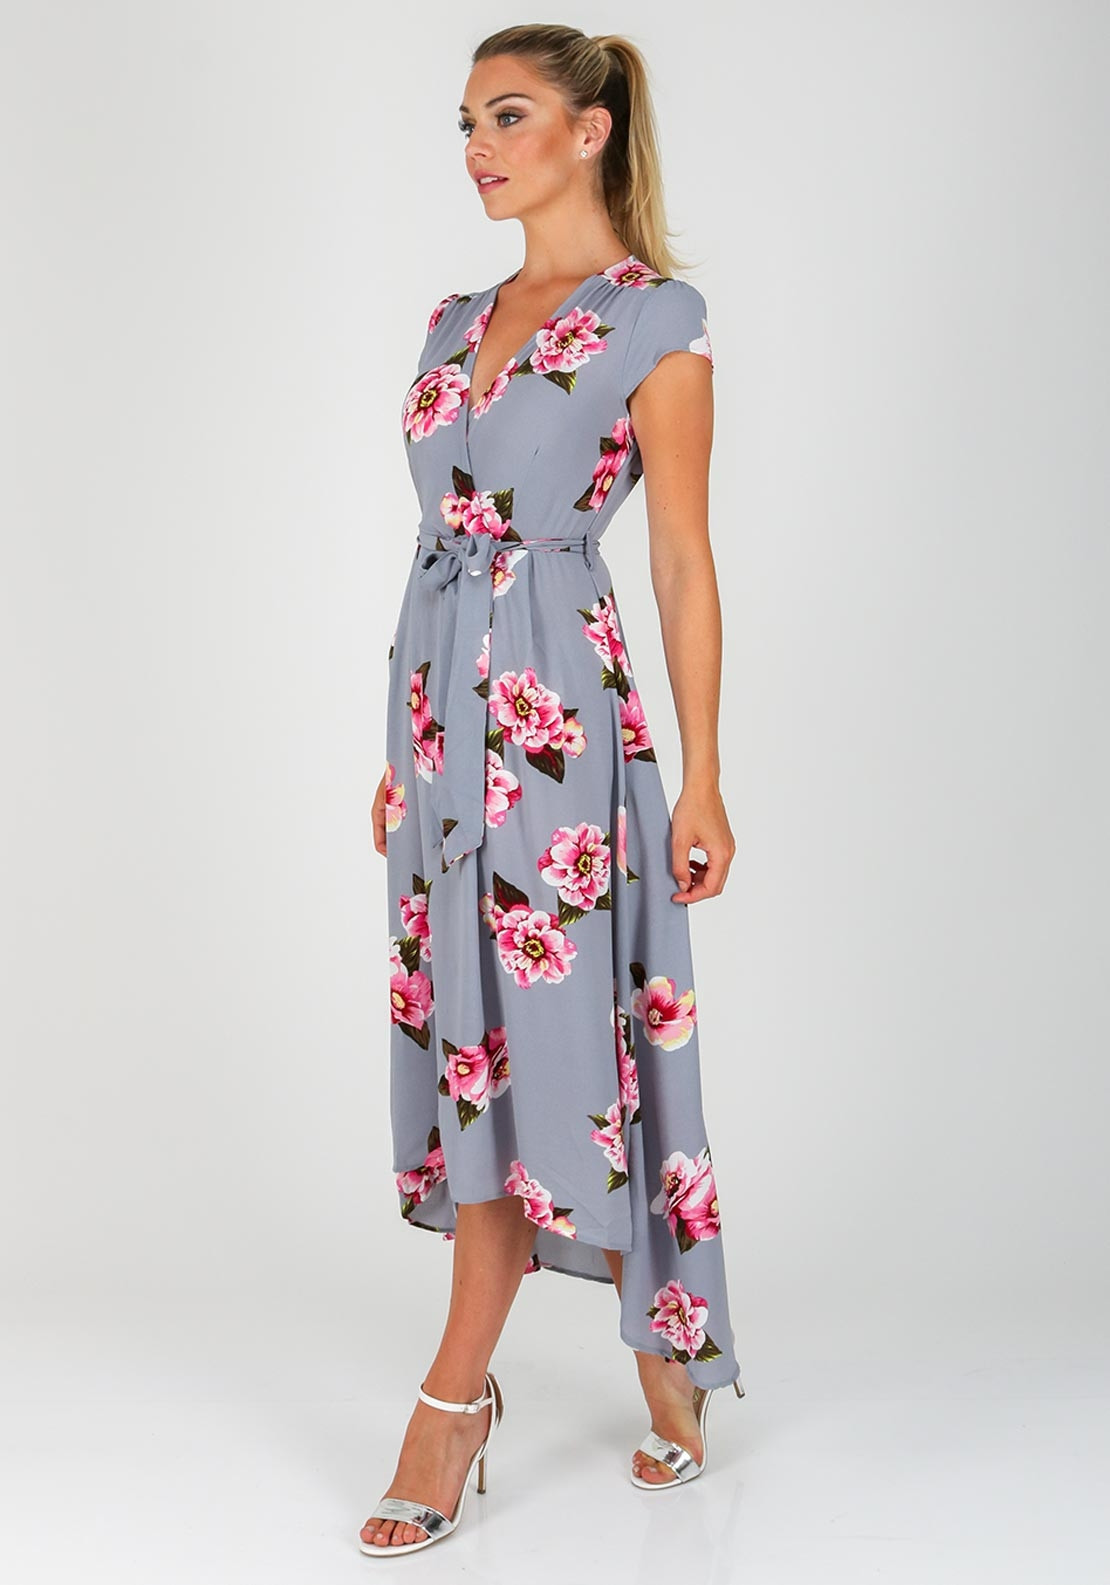 f253e4eae1e4 AX Paris Floral Dipped Hem Maxi Dress, Grey. Be the first to review this  product